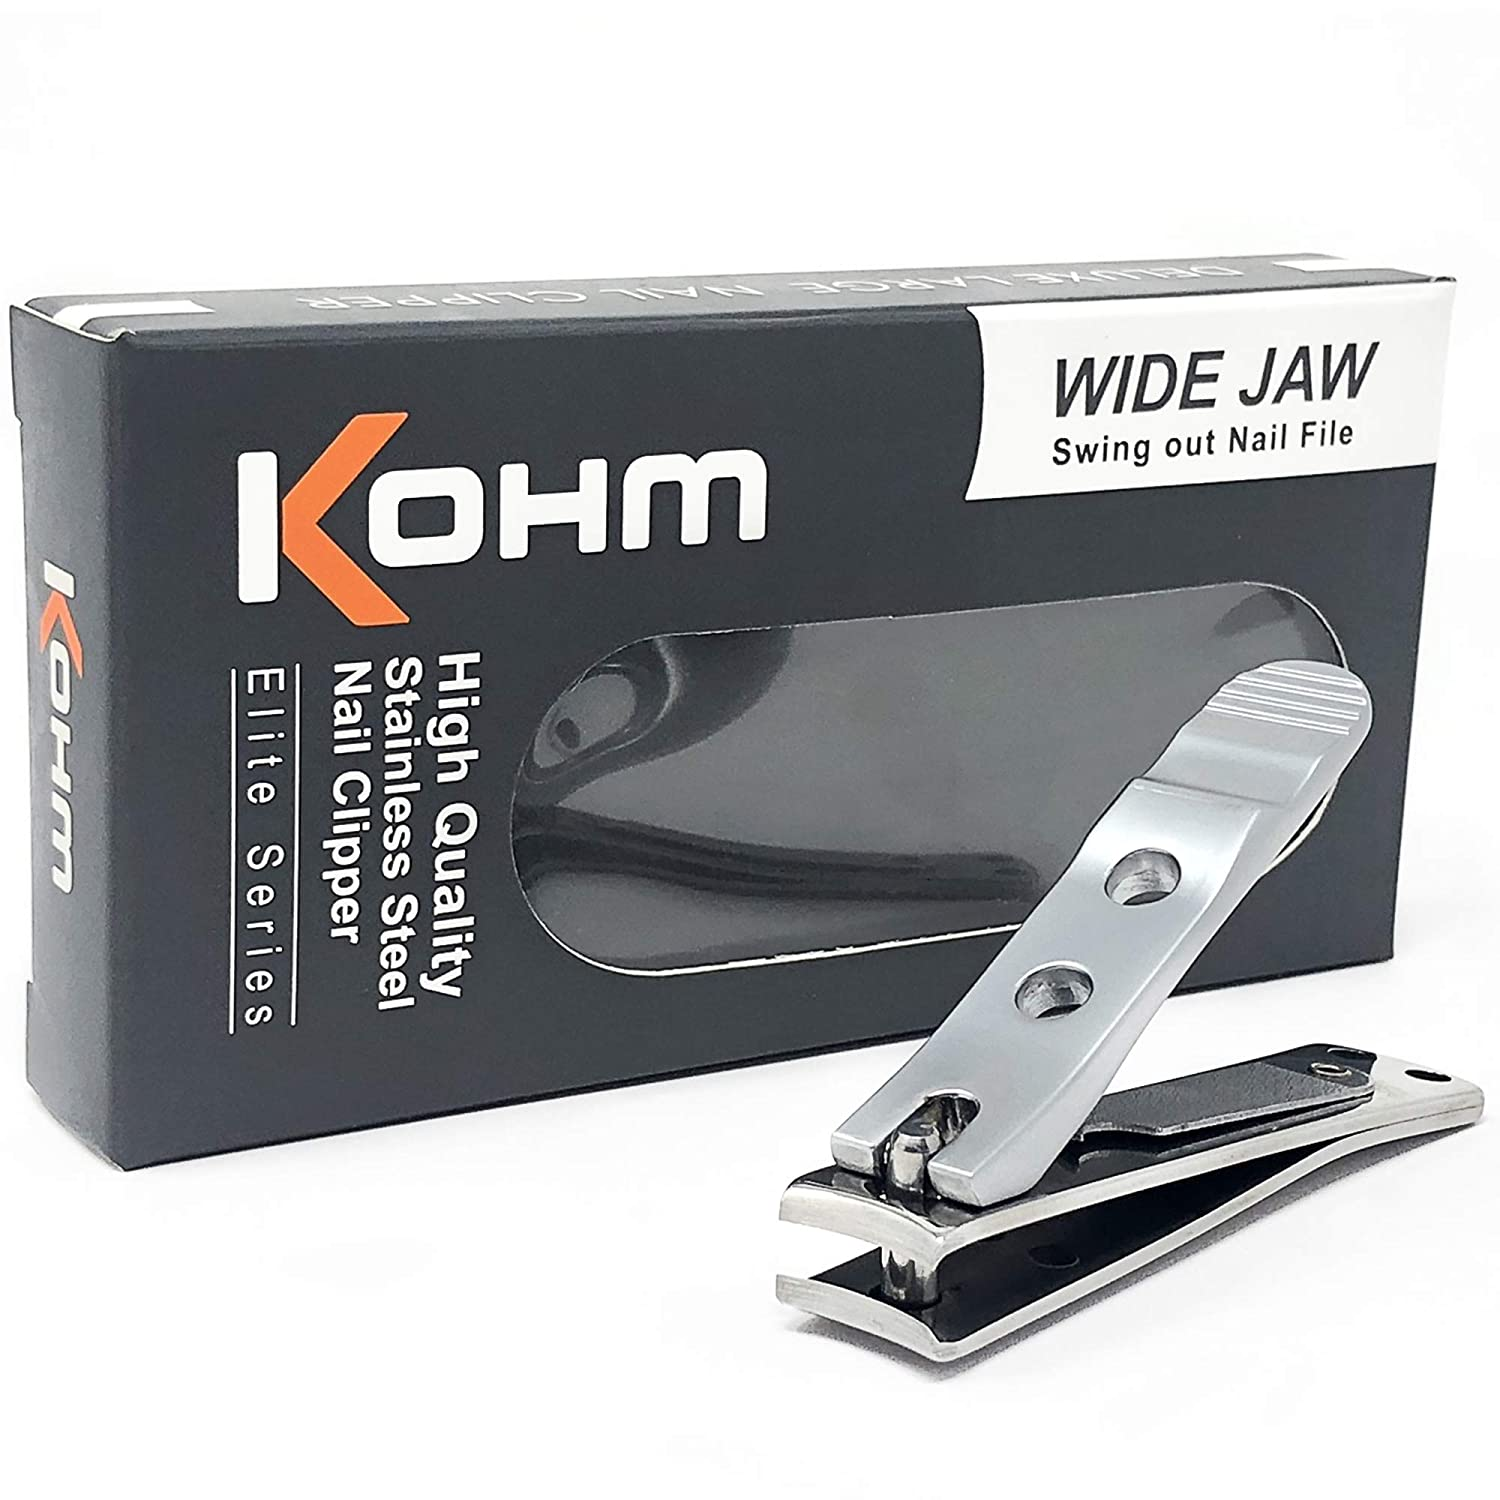 Kohm WHS-440L Heavy Duty, Curved Blade, Wide Jaw Toenail Clippers for Thick Nails, Large Nail Clippers for Men, Seniors, Women, Nail Clipper with File